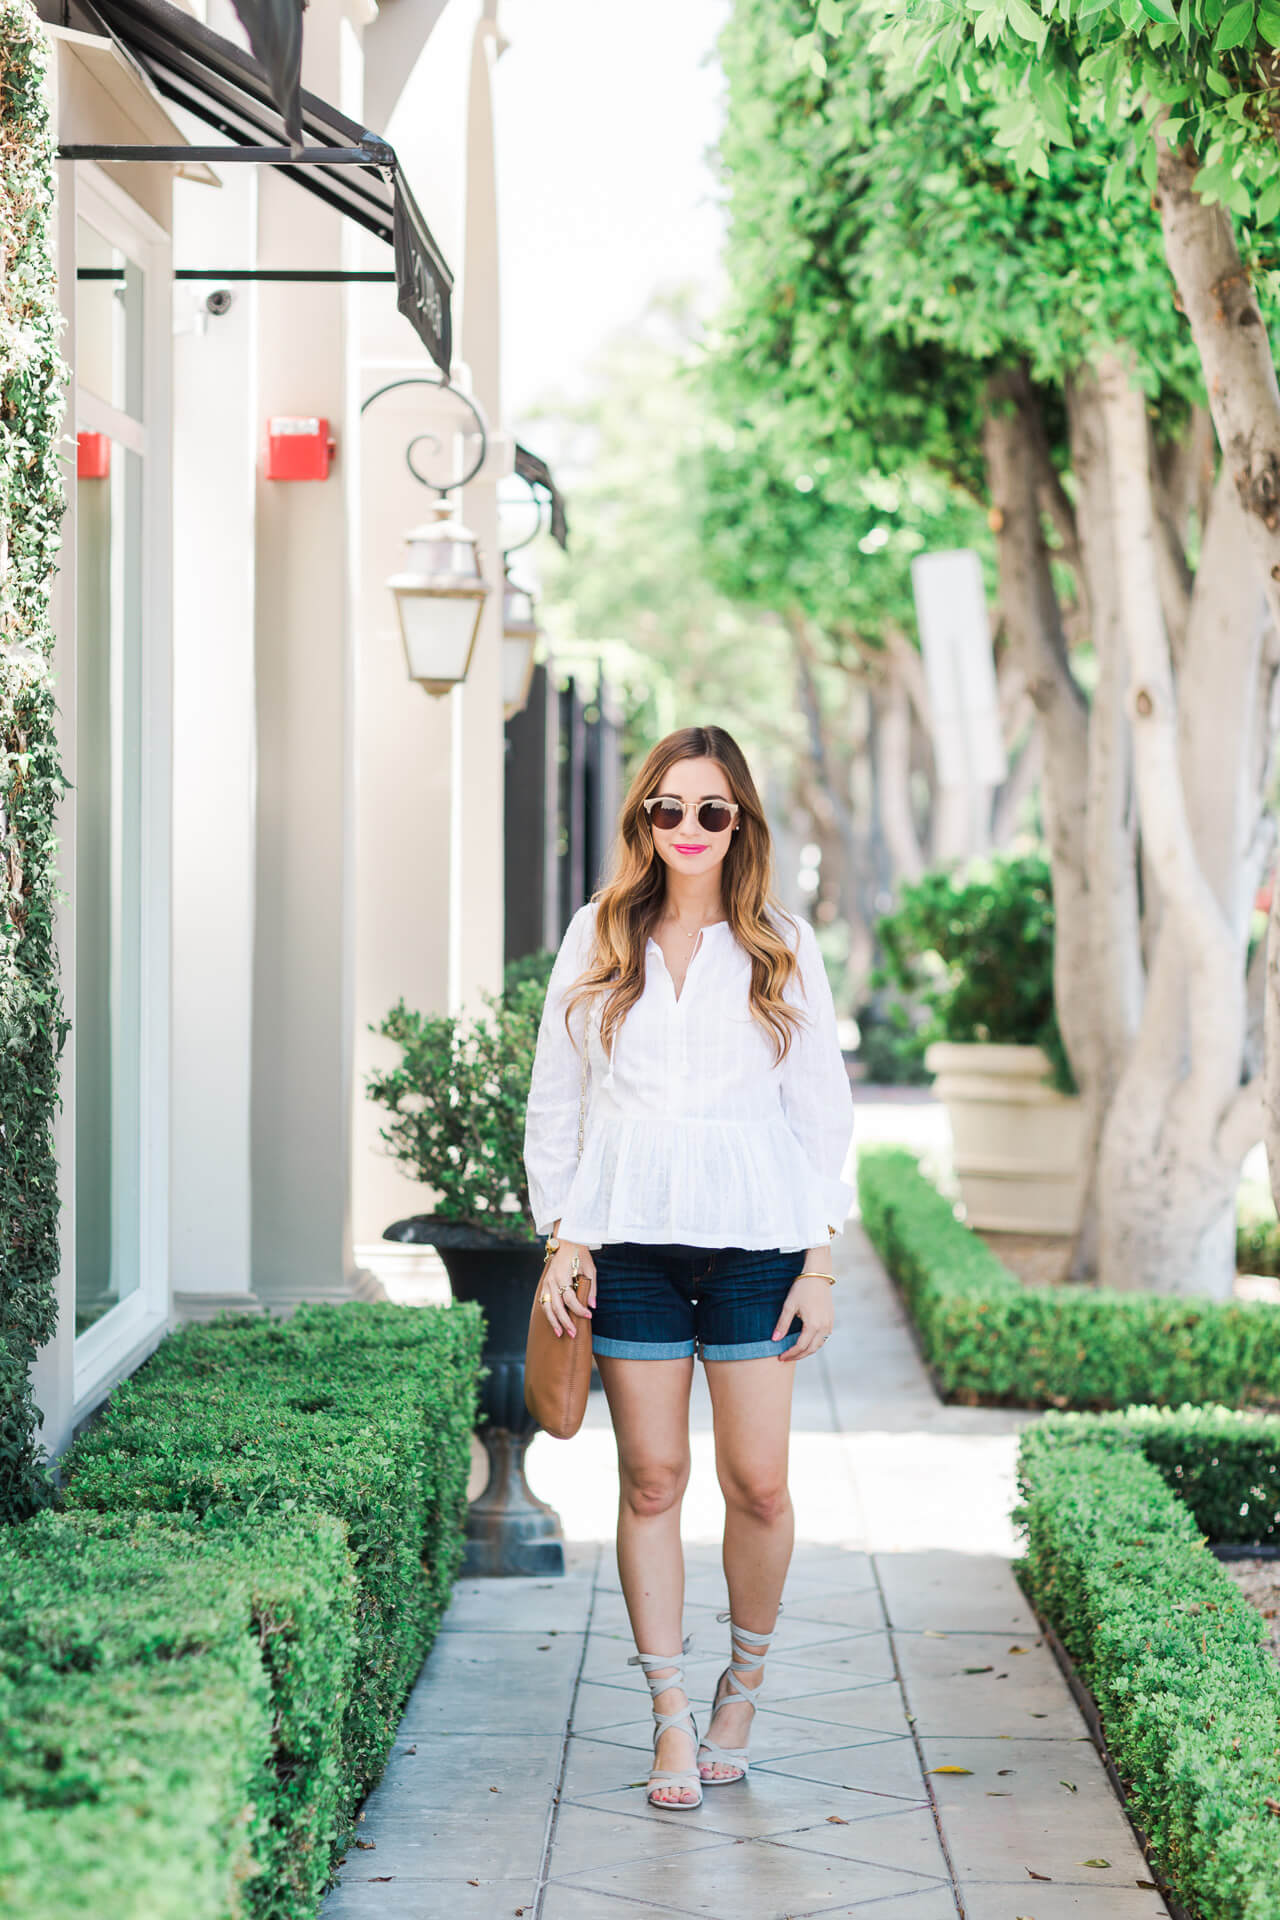 styling a white peplum top with denim shorts for summer